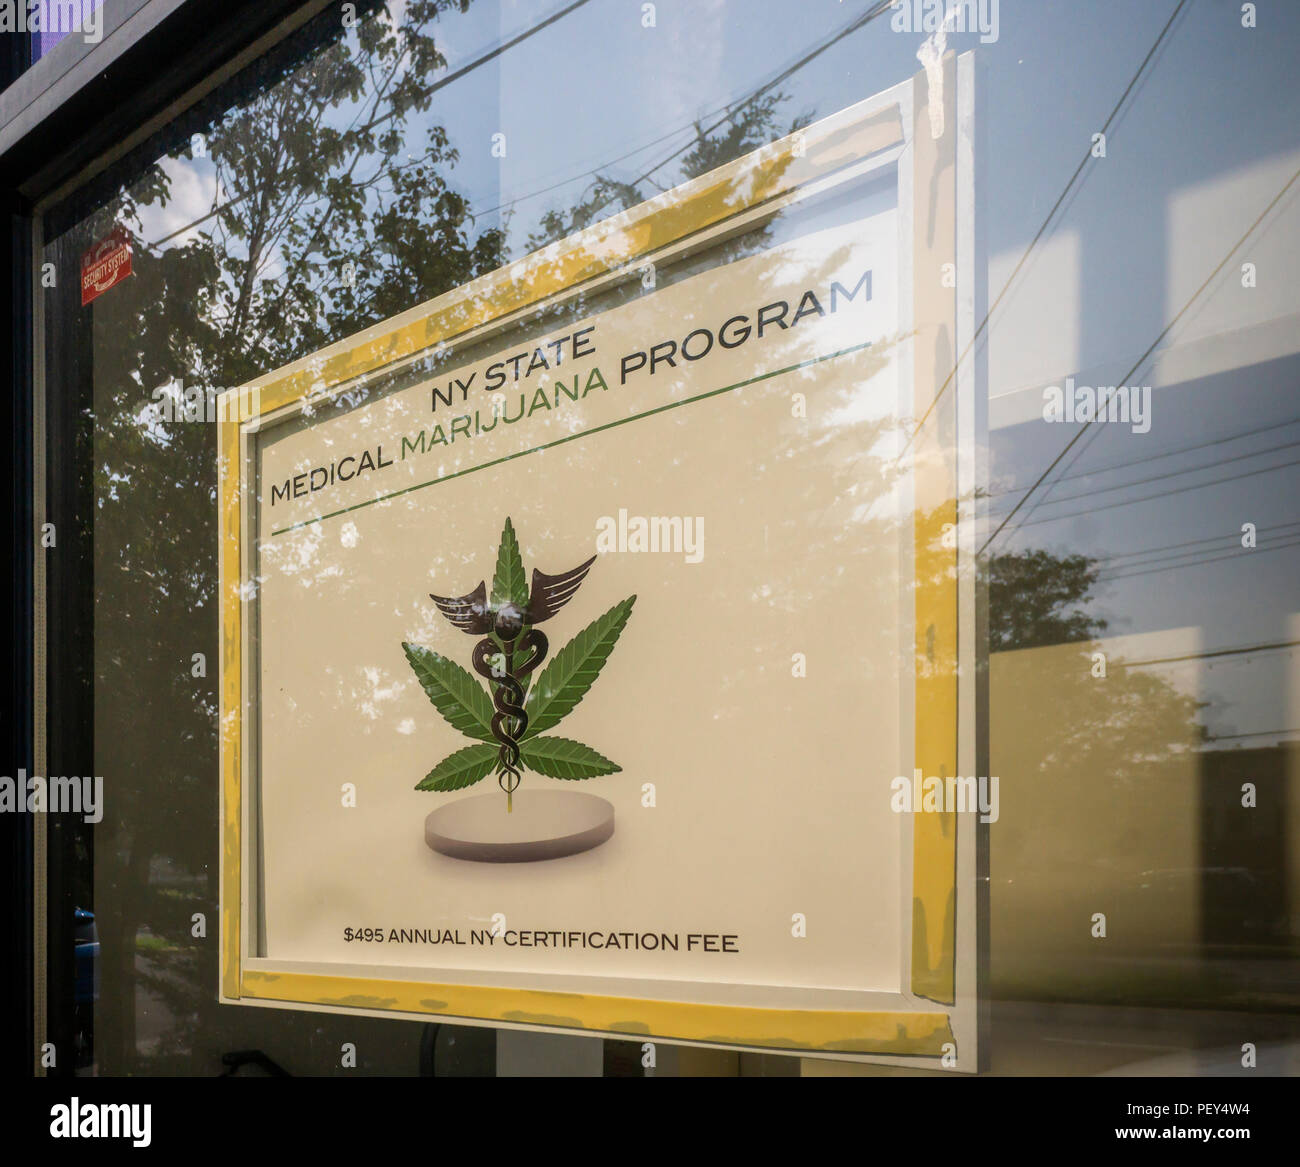 A sign n the window of a practitioner's office in New York informs patients that they participate in the New York State Medical Marijuana Program, seen on Wednesday, August 15, 2018. The New York State Medical Marijuana Program allows patients suffering from specified serious conditions who also have a condition clinically associated with, or a complication of, the serious condition to be certified by a practitioner to receive medical marijuana products to be used for medical use. (© Richard B. Levine) - Stock Image